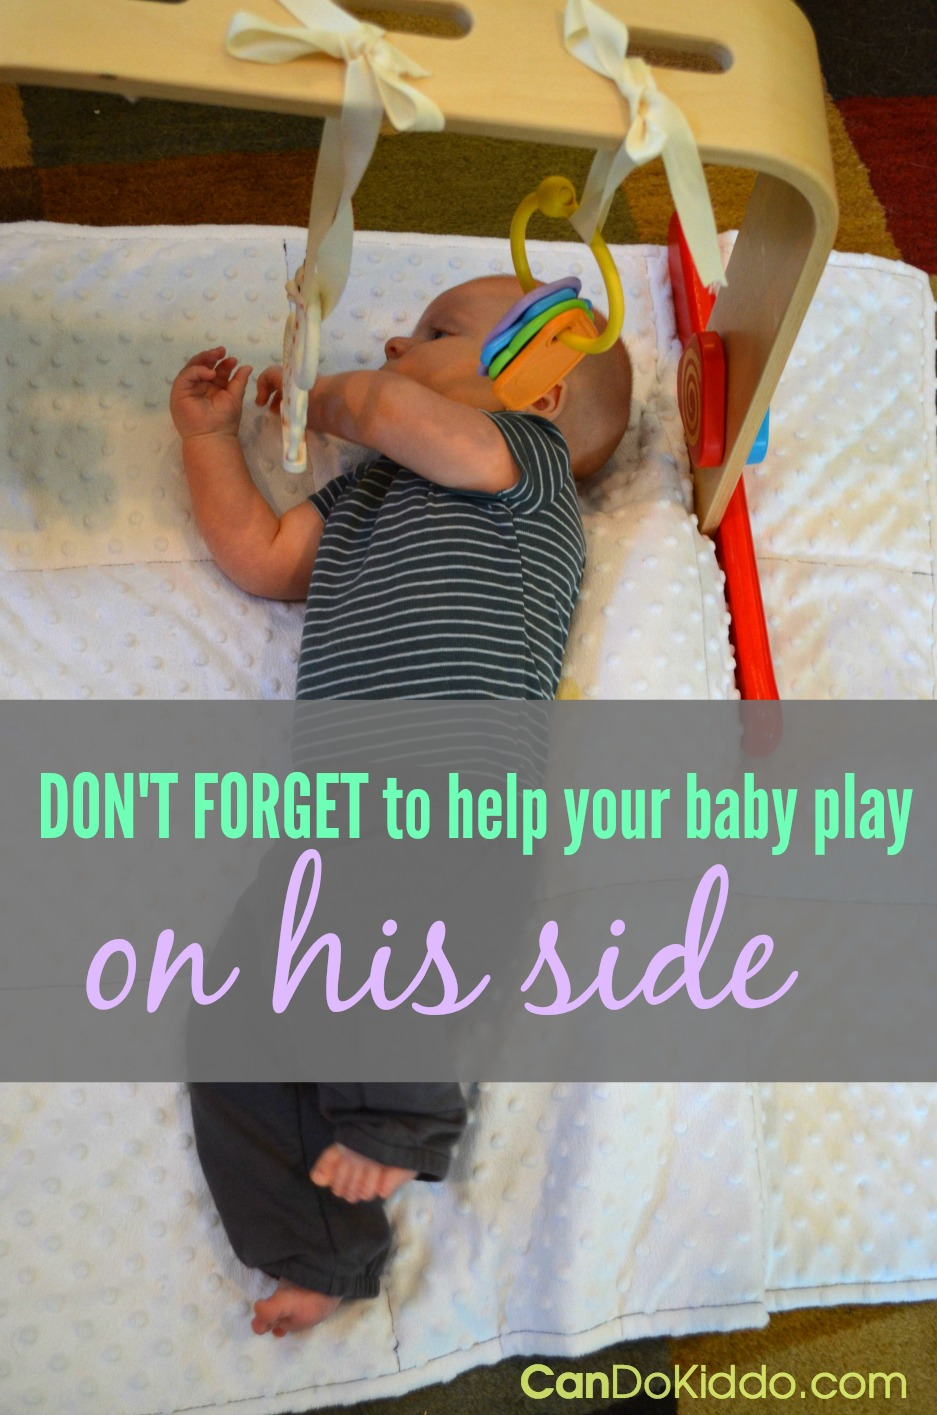 Important baby play positioning tips from a pediatric OT. CanDo Kiddo